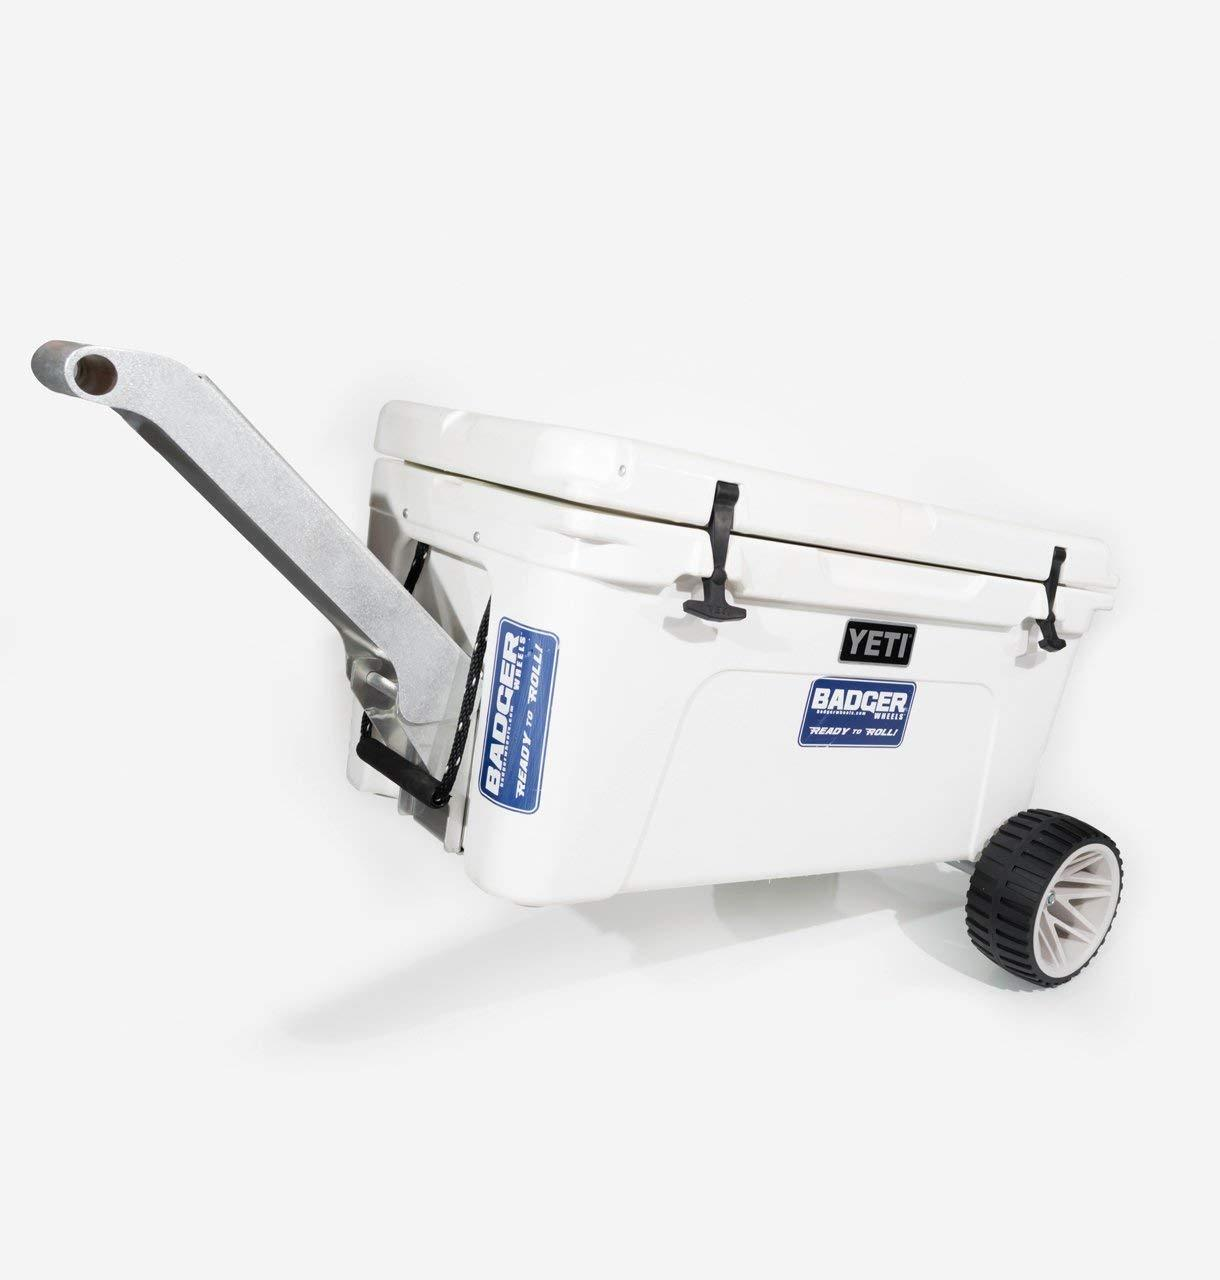 Large Wheel Badger 65  Kit - Single Axle + Handle Stand Tundra 50, 65 and 110  wholesale cheap